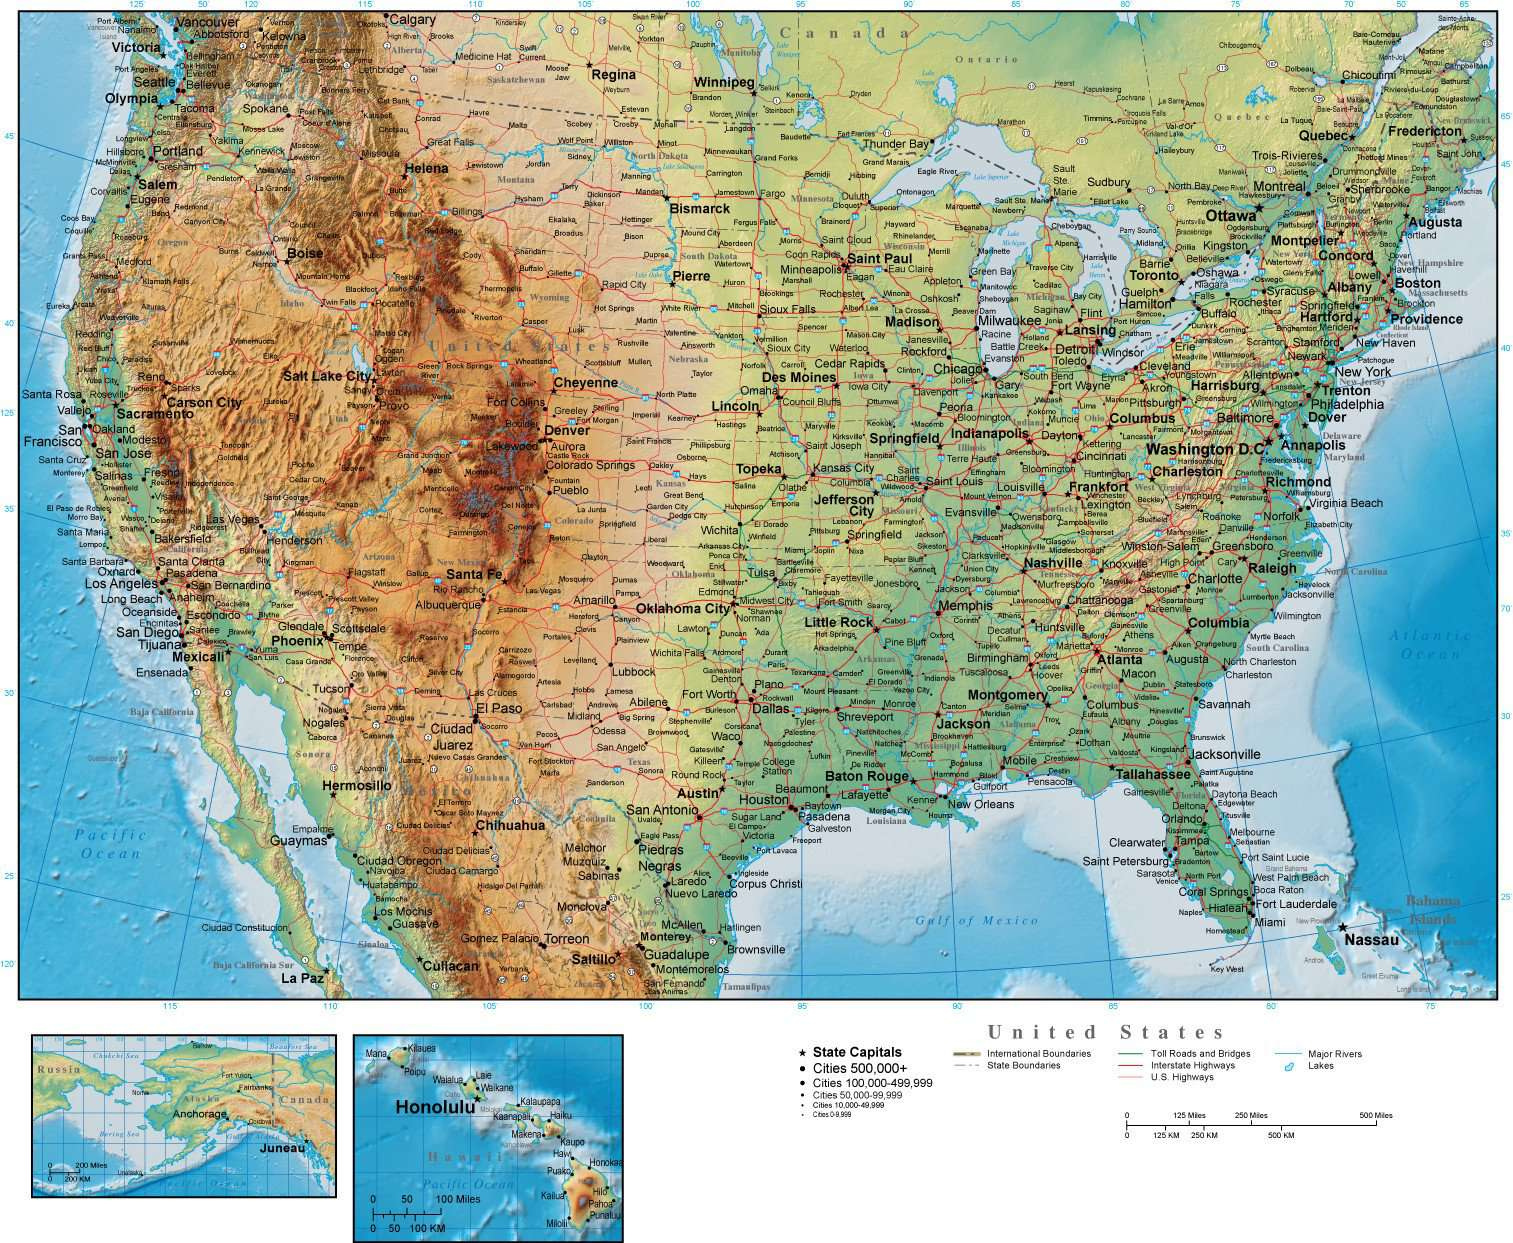 Digital Page Size USA Map with Land and Ocean Floor Terrain on map of western us, map of western states, map of bahamas, map of countries, map of europe, map of wyoming, map of us, map of south america, map of western hemisphere, map of hawaii, map of virginia, map of texas, map of earth, map of pacific northwest, map of south dakota, map of usa, map of midwest, map of ohio, map of new york, map of yellowstone national park, map of time zones, map of world, map of guam, map of florida, map of california, map of georgia, map of canada, map of the world, map of mexico, map of the us, map of china, map of great lakes, map of washington, map of caribbean, map of africa, map of italy, map of north carolina, map of east coast, map of germany,